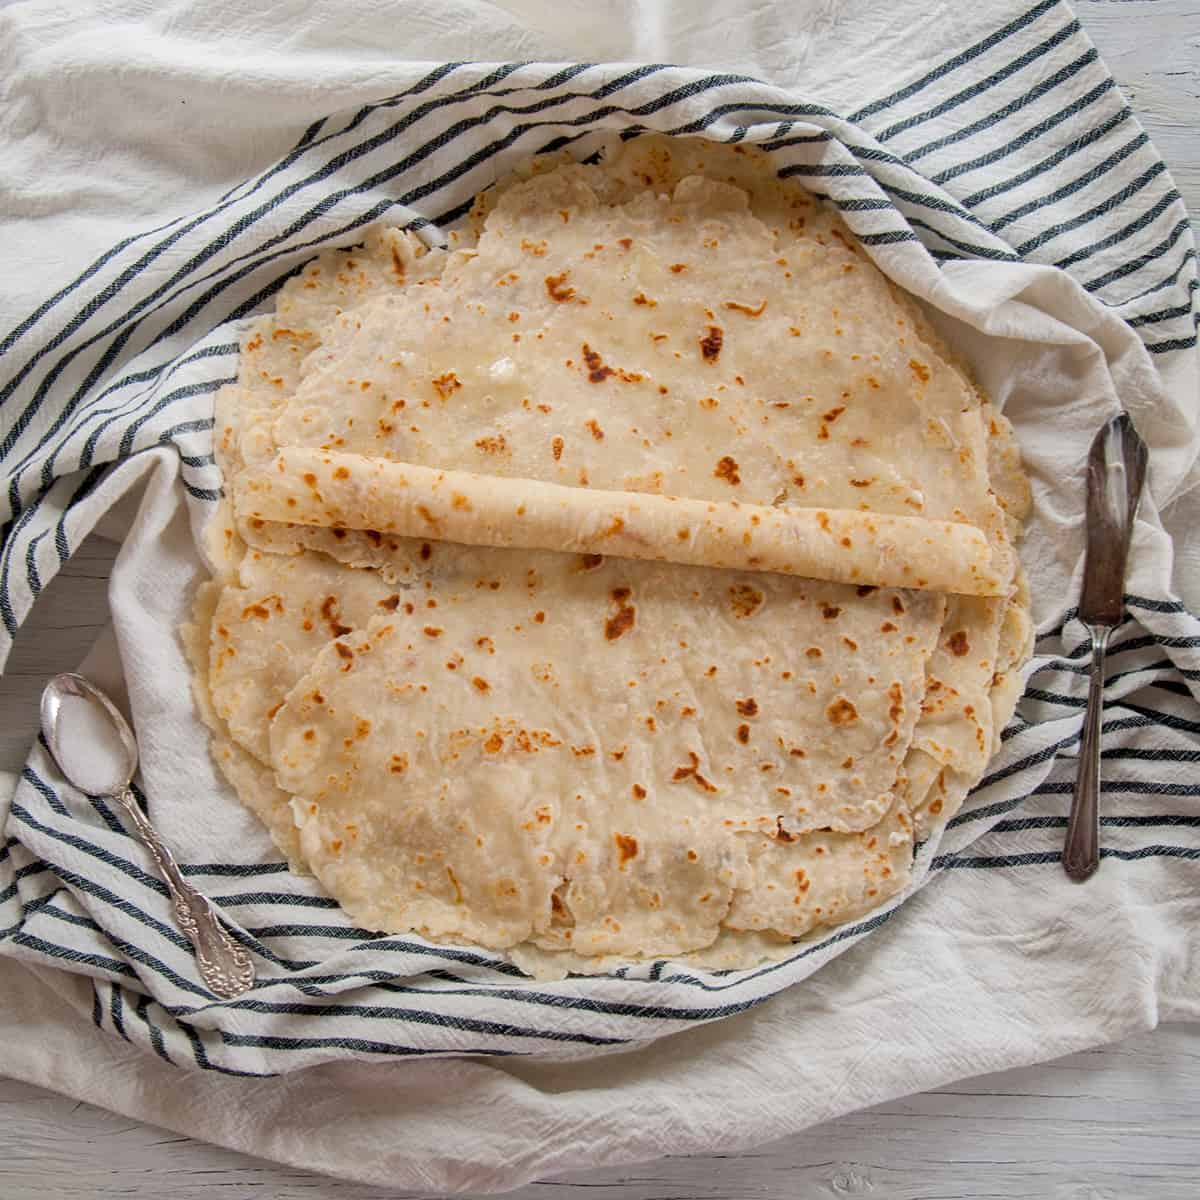 Flat lefse being rolled on a blue napkin.